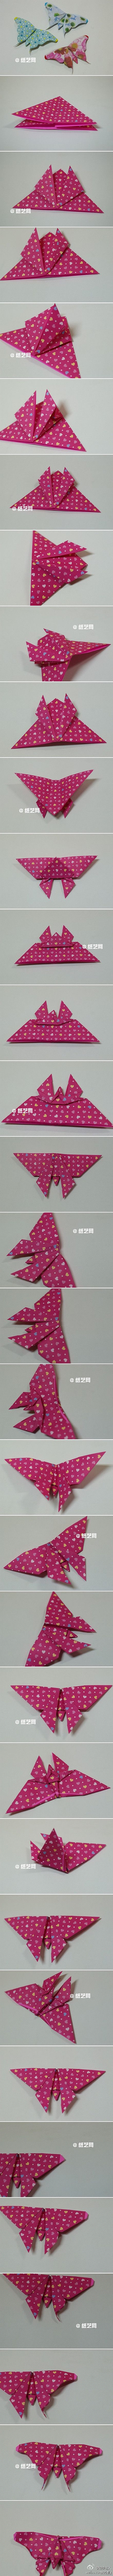 best origami images on pinterest origami paper origami ideas